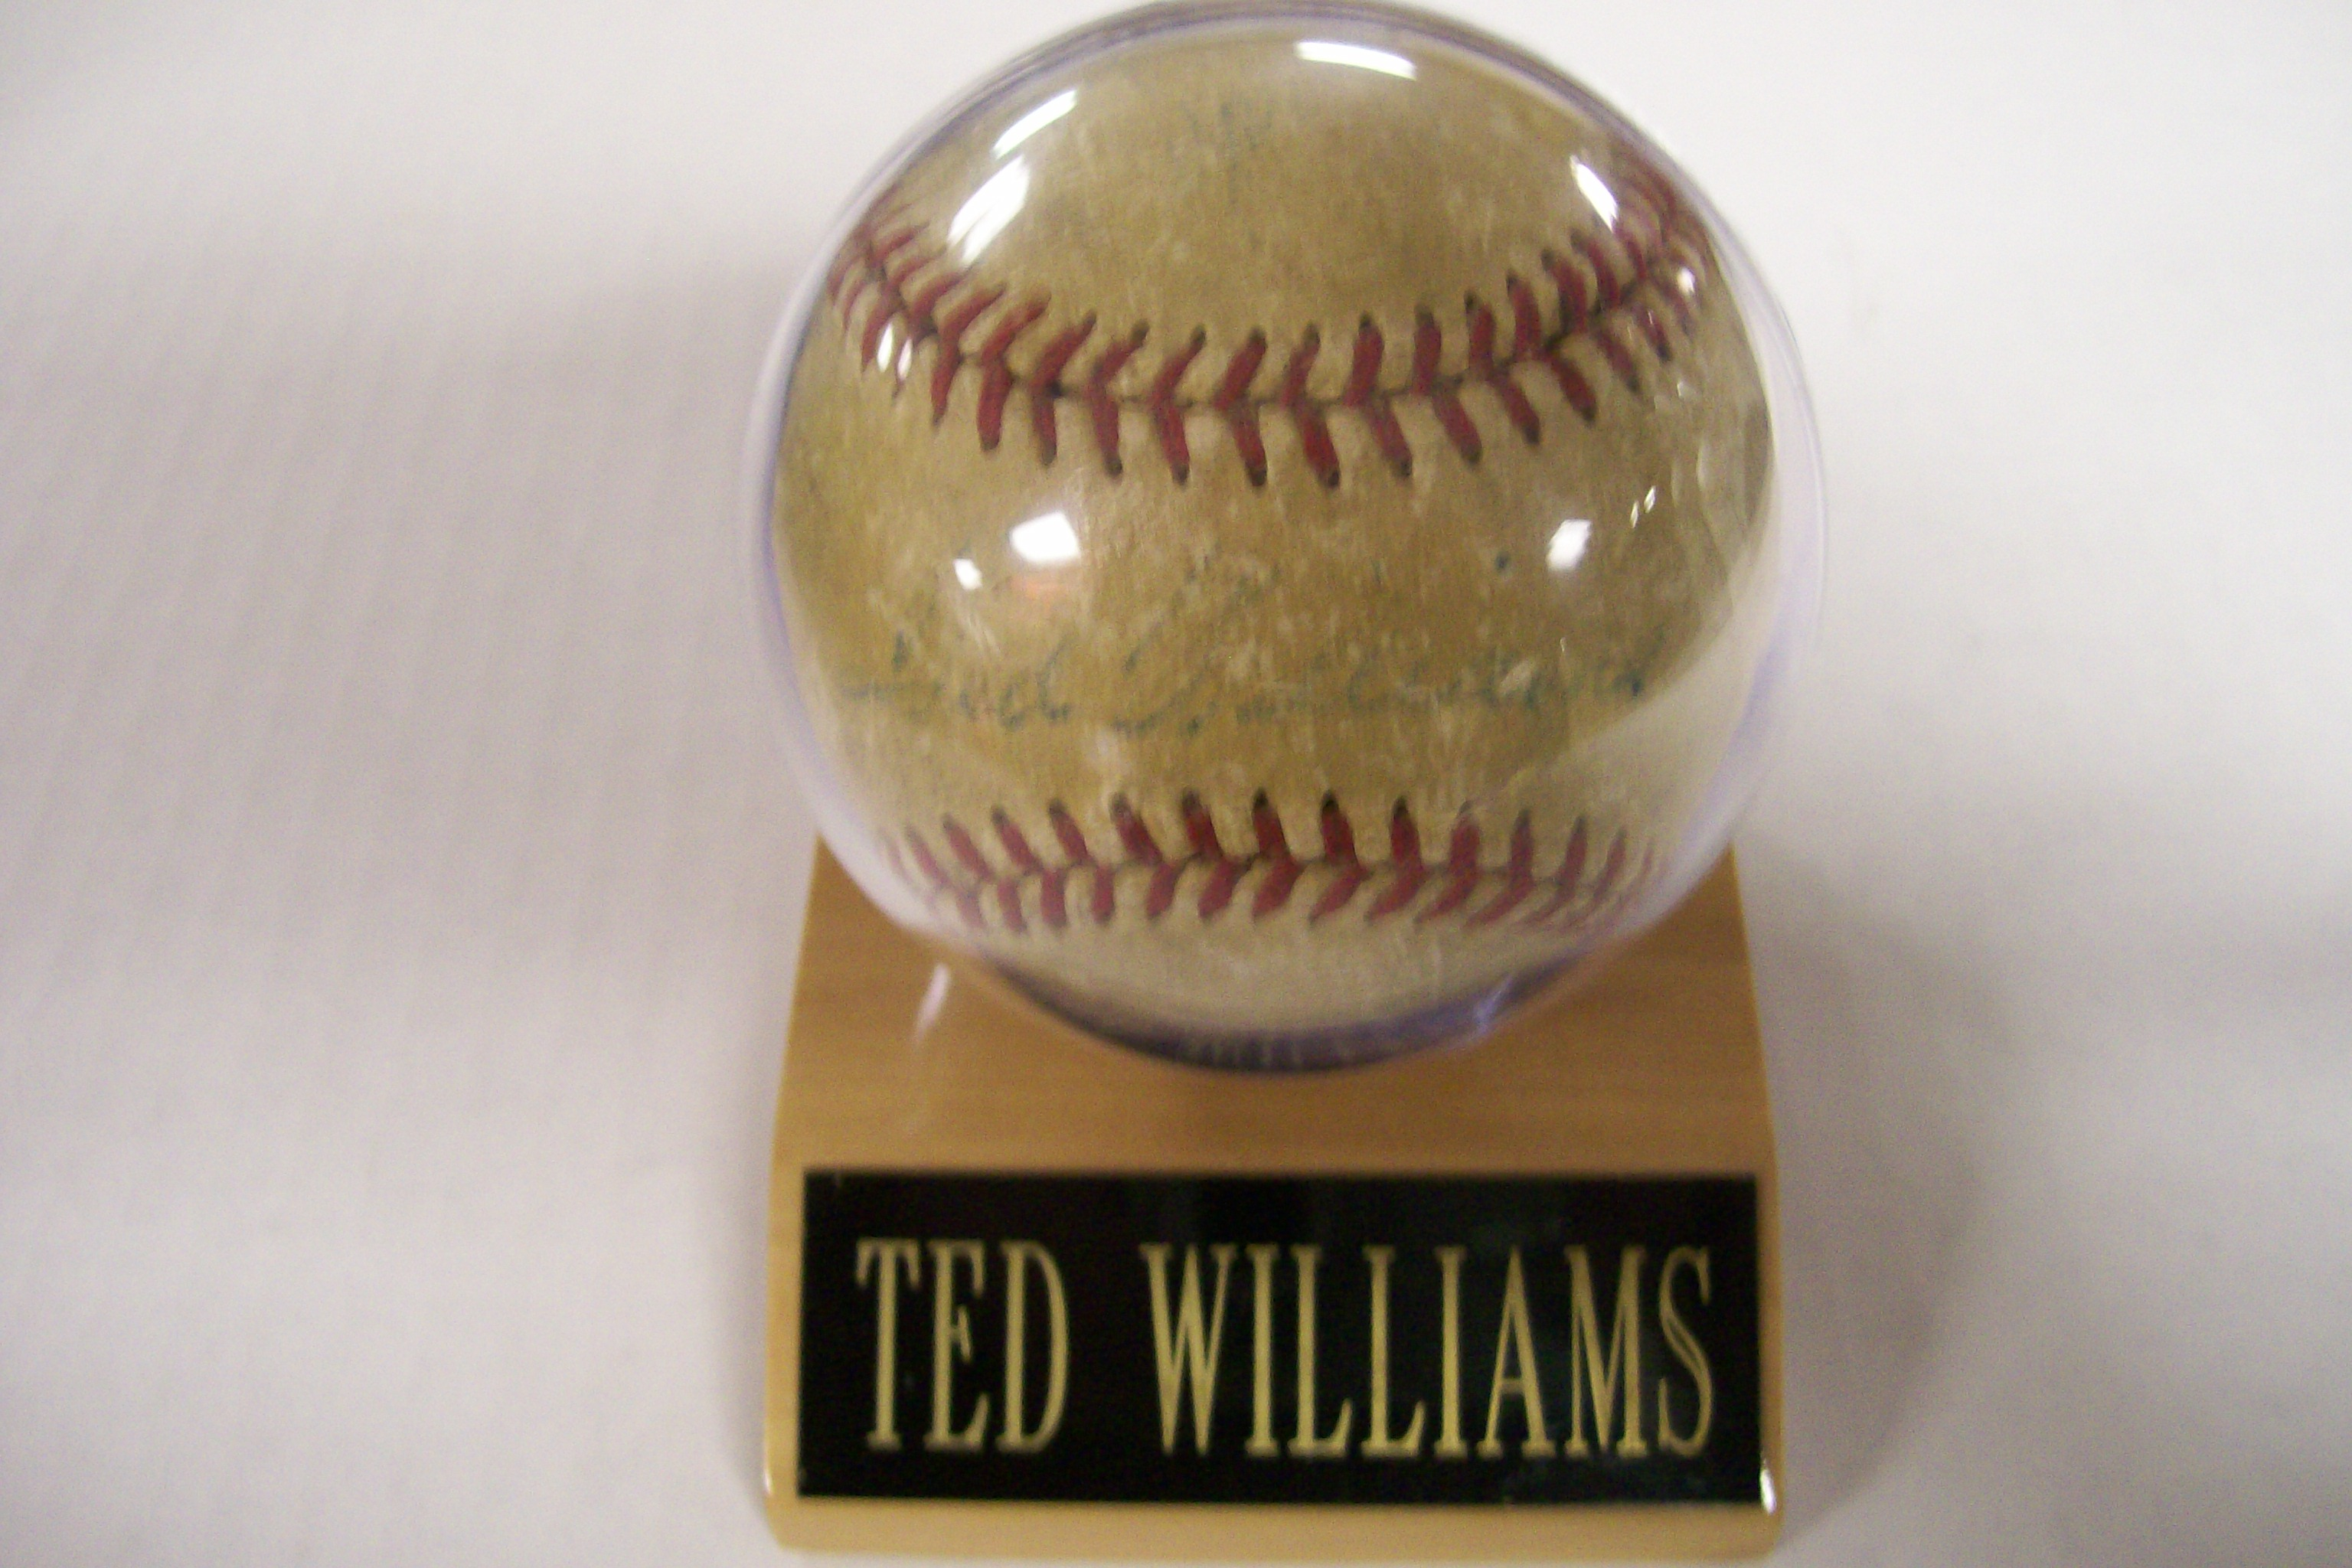 Ted Williams Autographed Baseball+Johnny Romano+Others